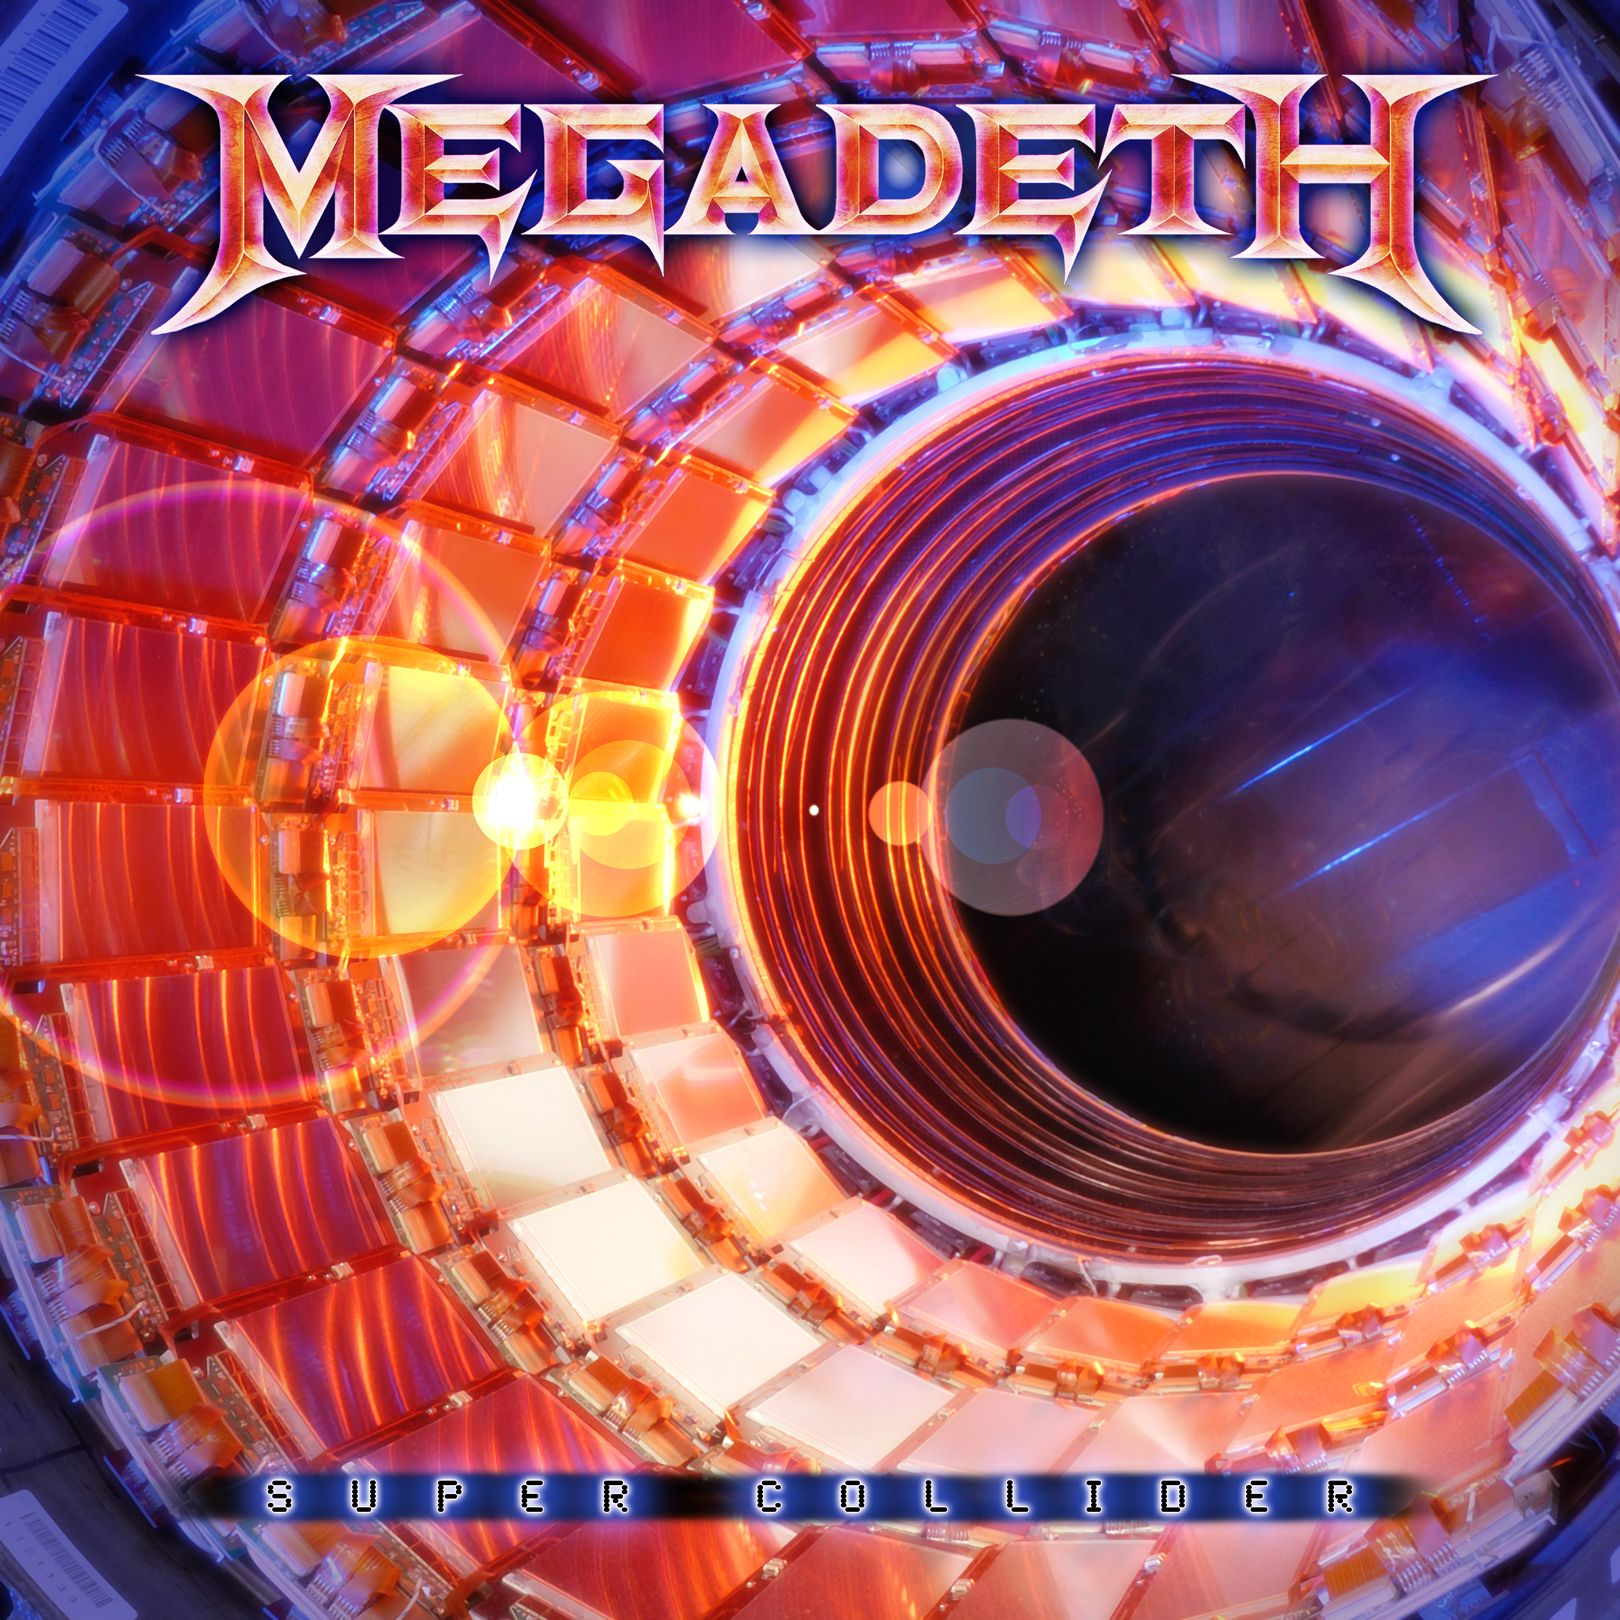 Megadeth - Super Collider album cover